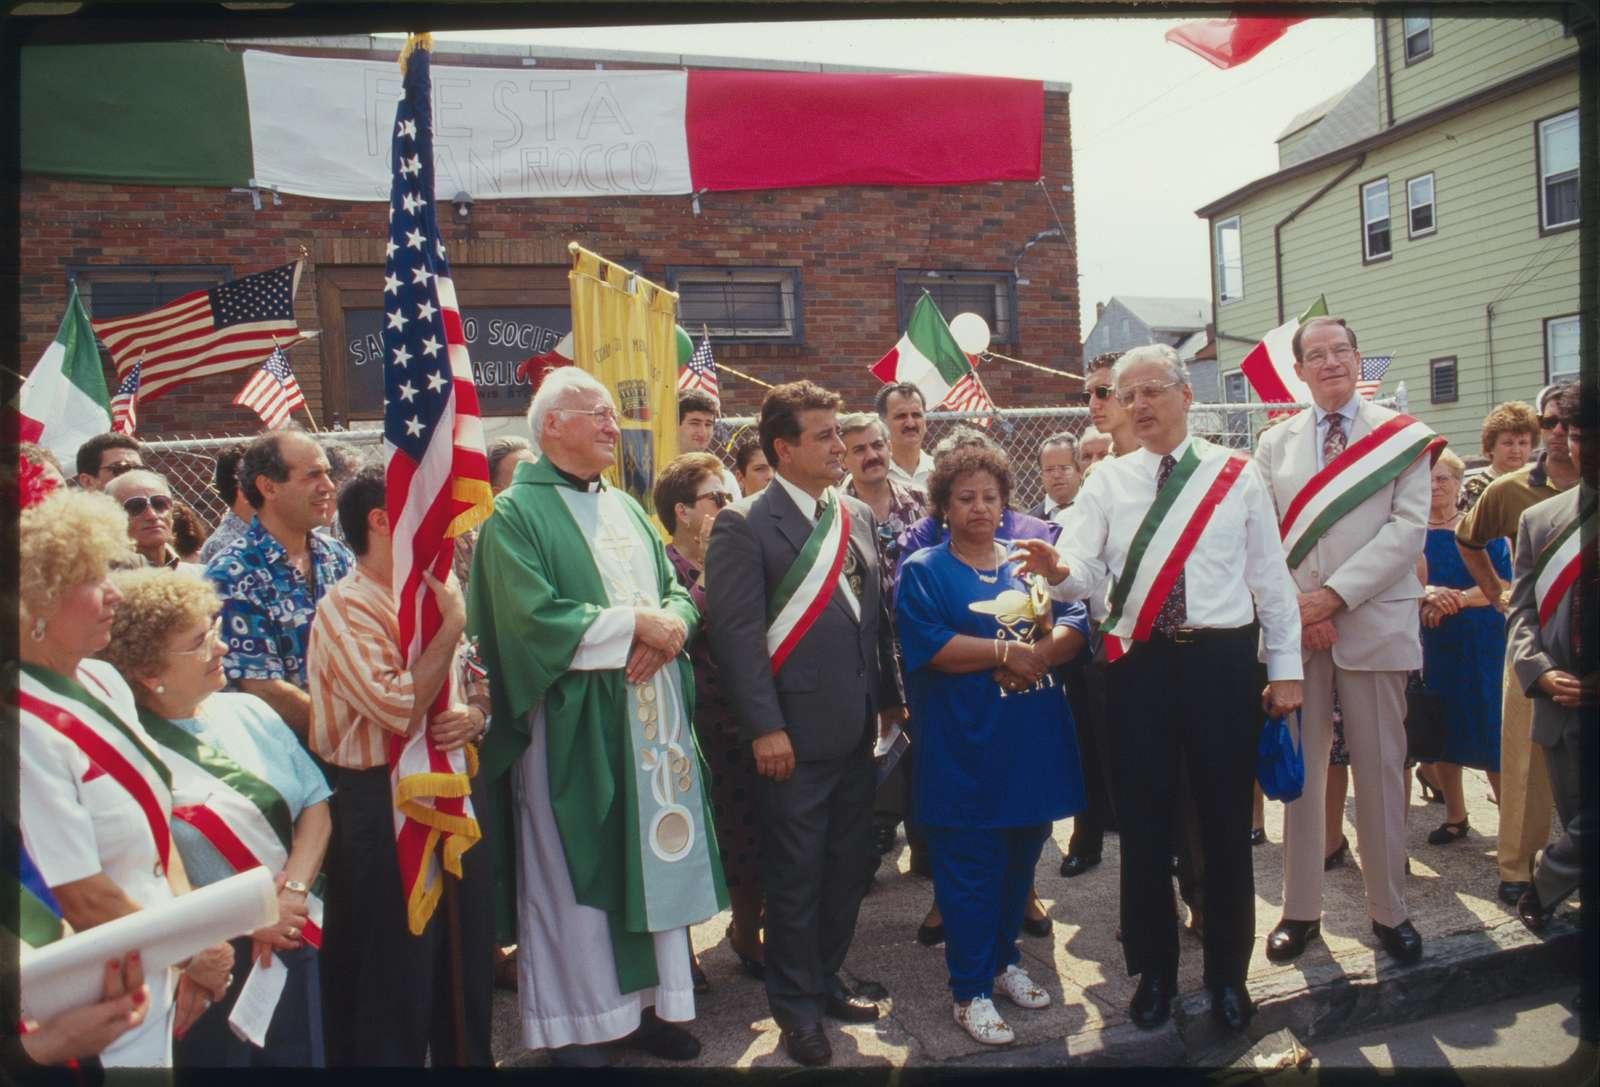 At the conclusion of the procession, dignitaries stand in front of the Montescaglioso Club, on Lewis Street; the tall man to the right is Congressman Herbert Klein, and the man to his right is Paterson mayor William Pascrell.